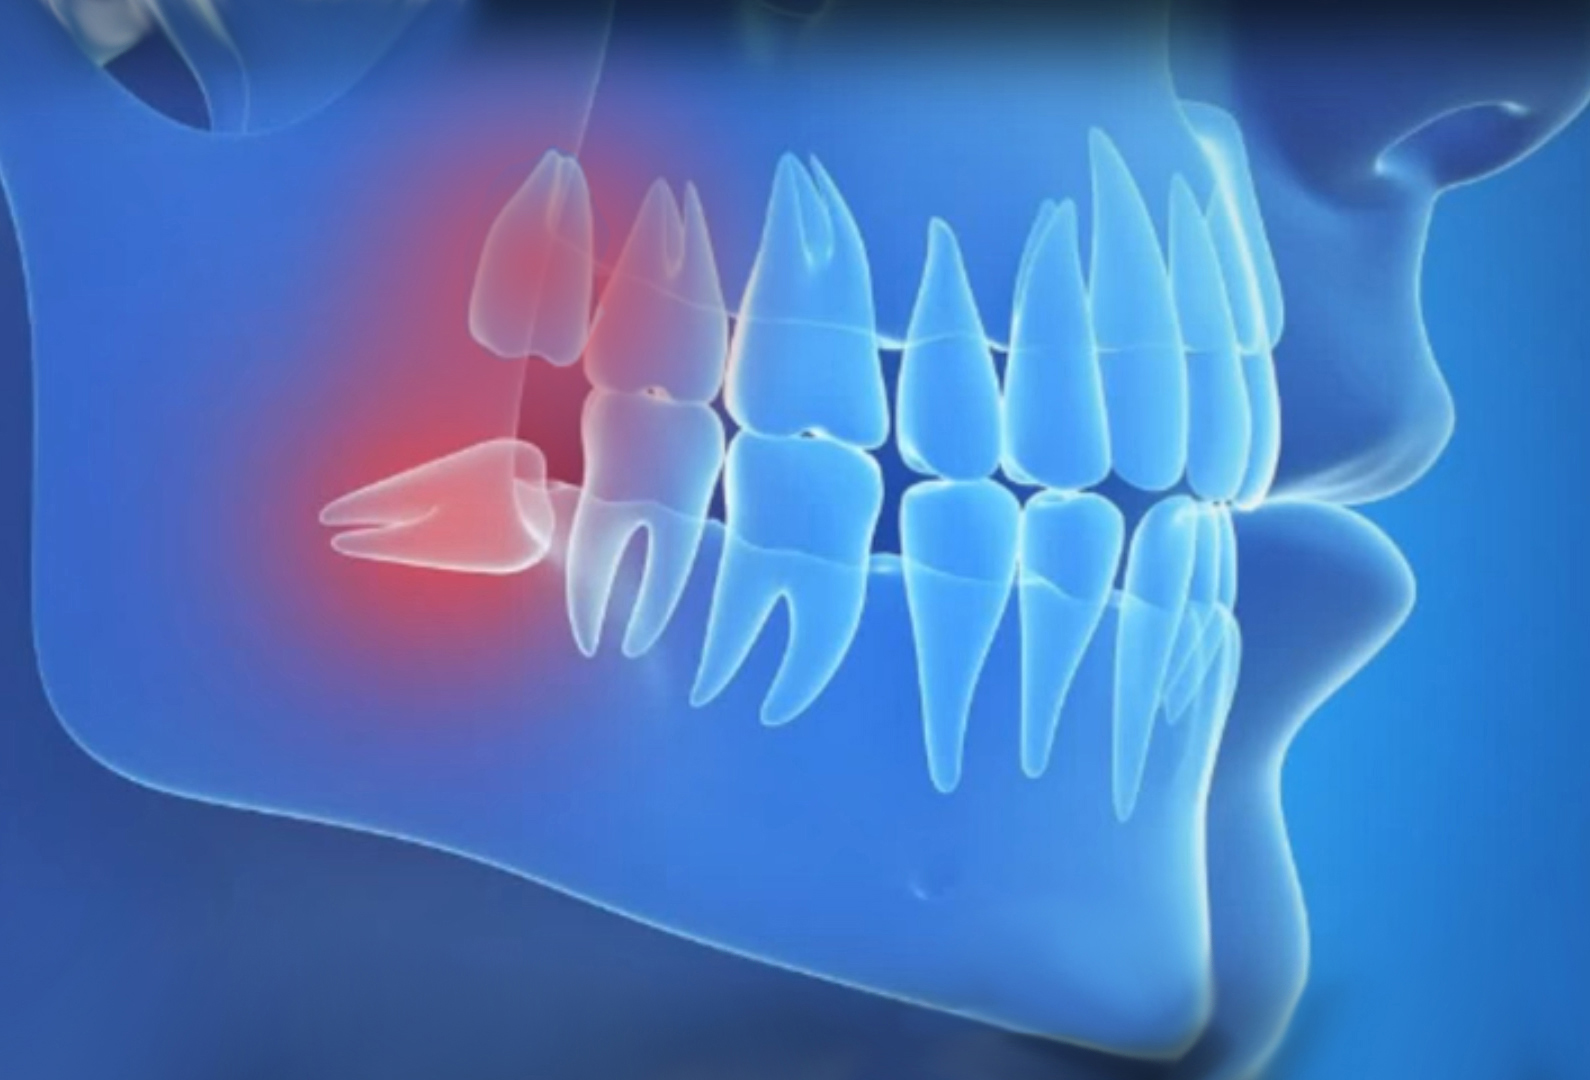 Why does a wisdom tooth behave differently from other teeth?